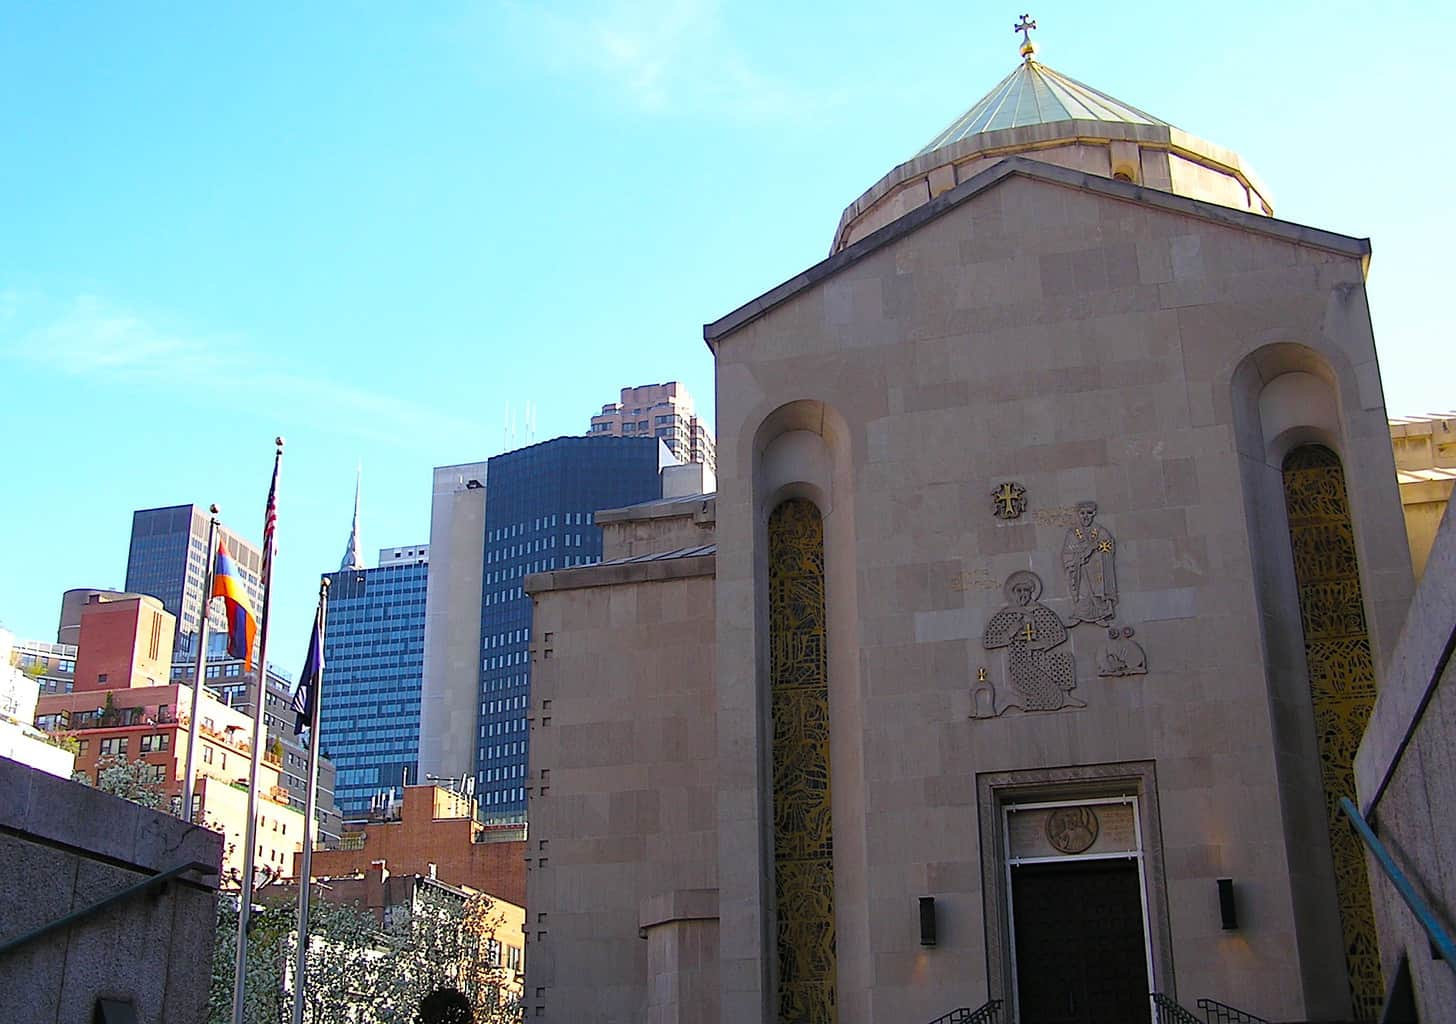 The unassuming exterior of New York City's Saint Vartan Armenian Cathedral, one of the best churches in NYC.